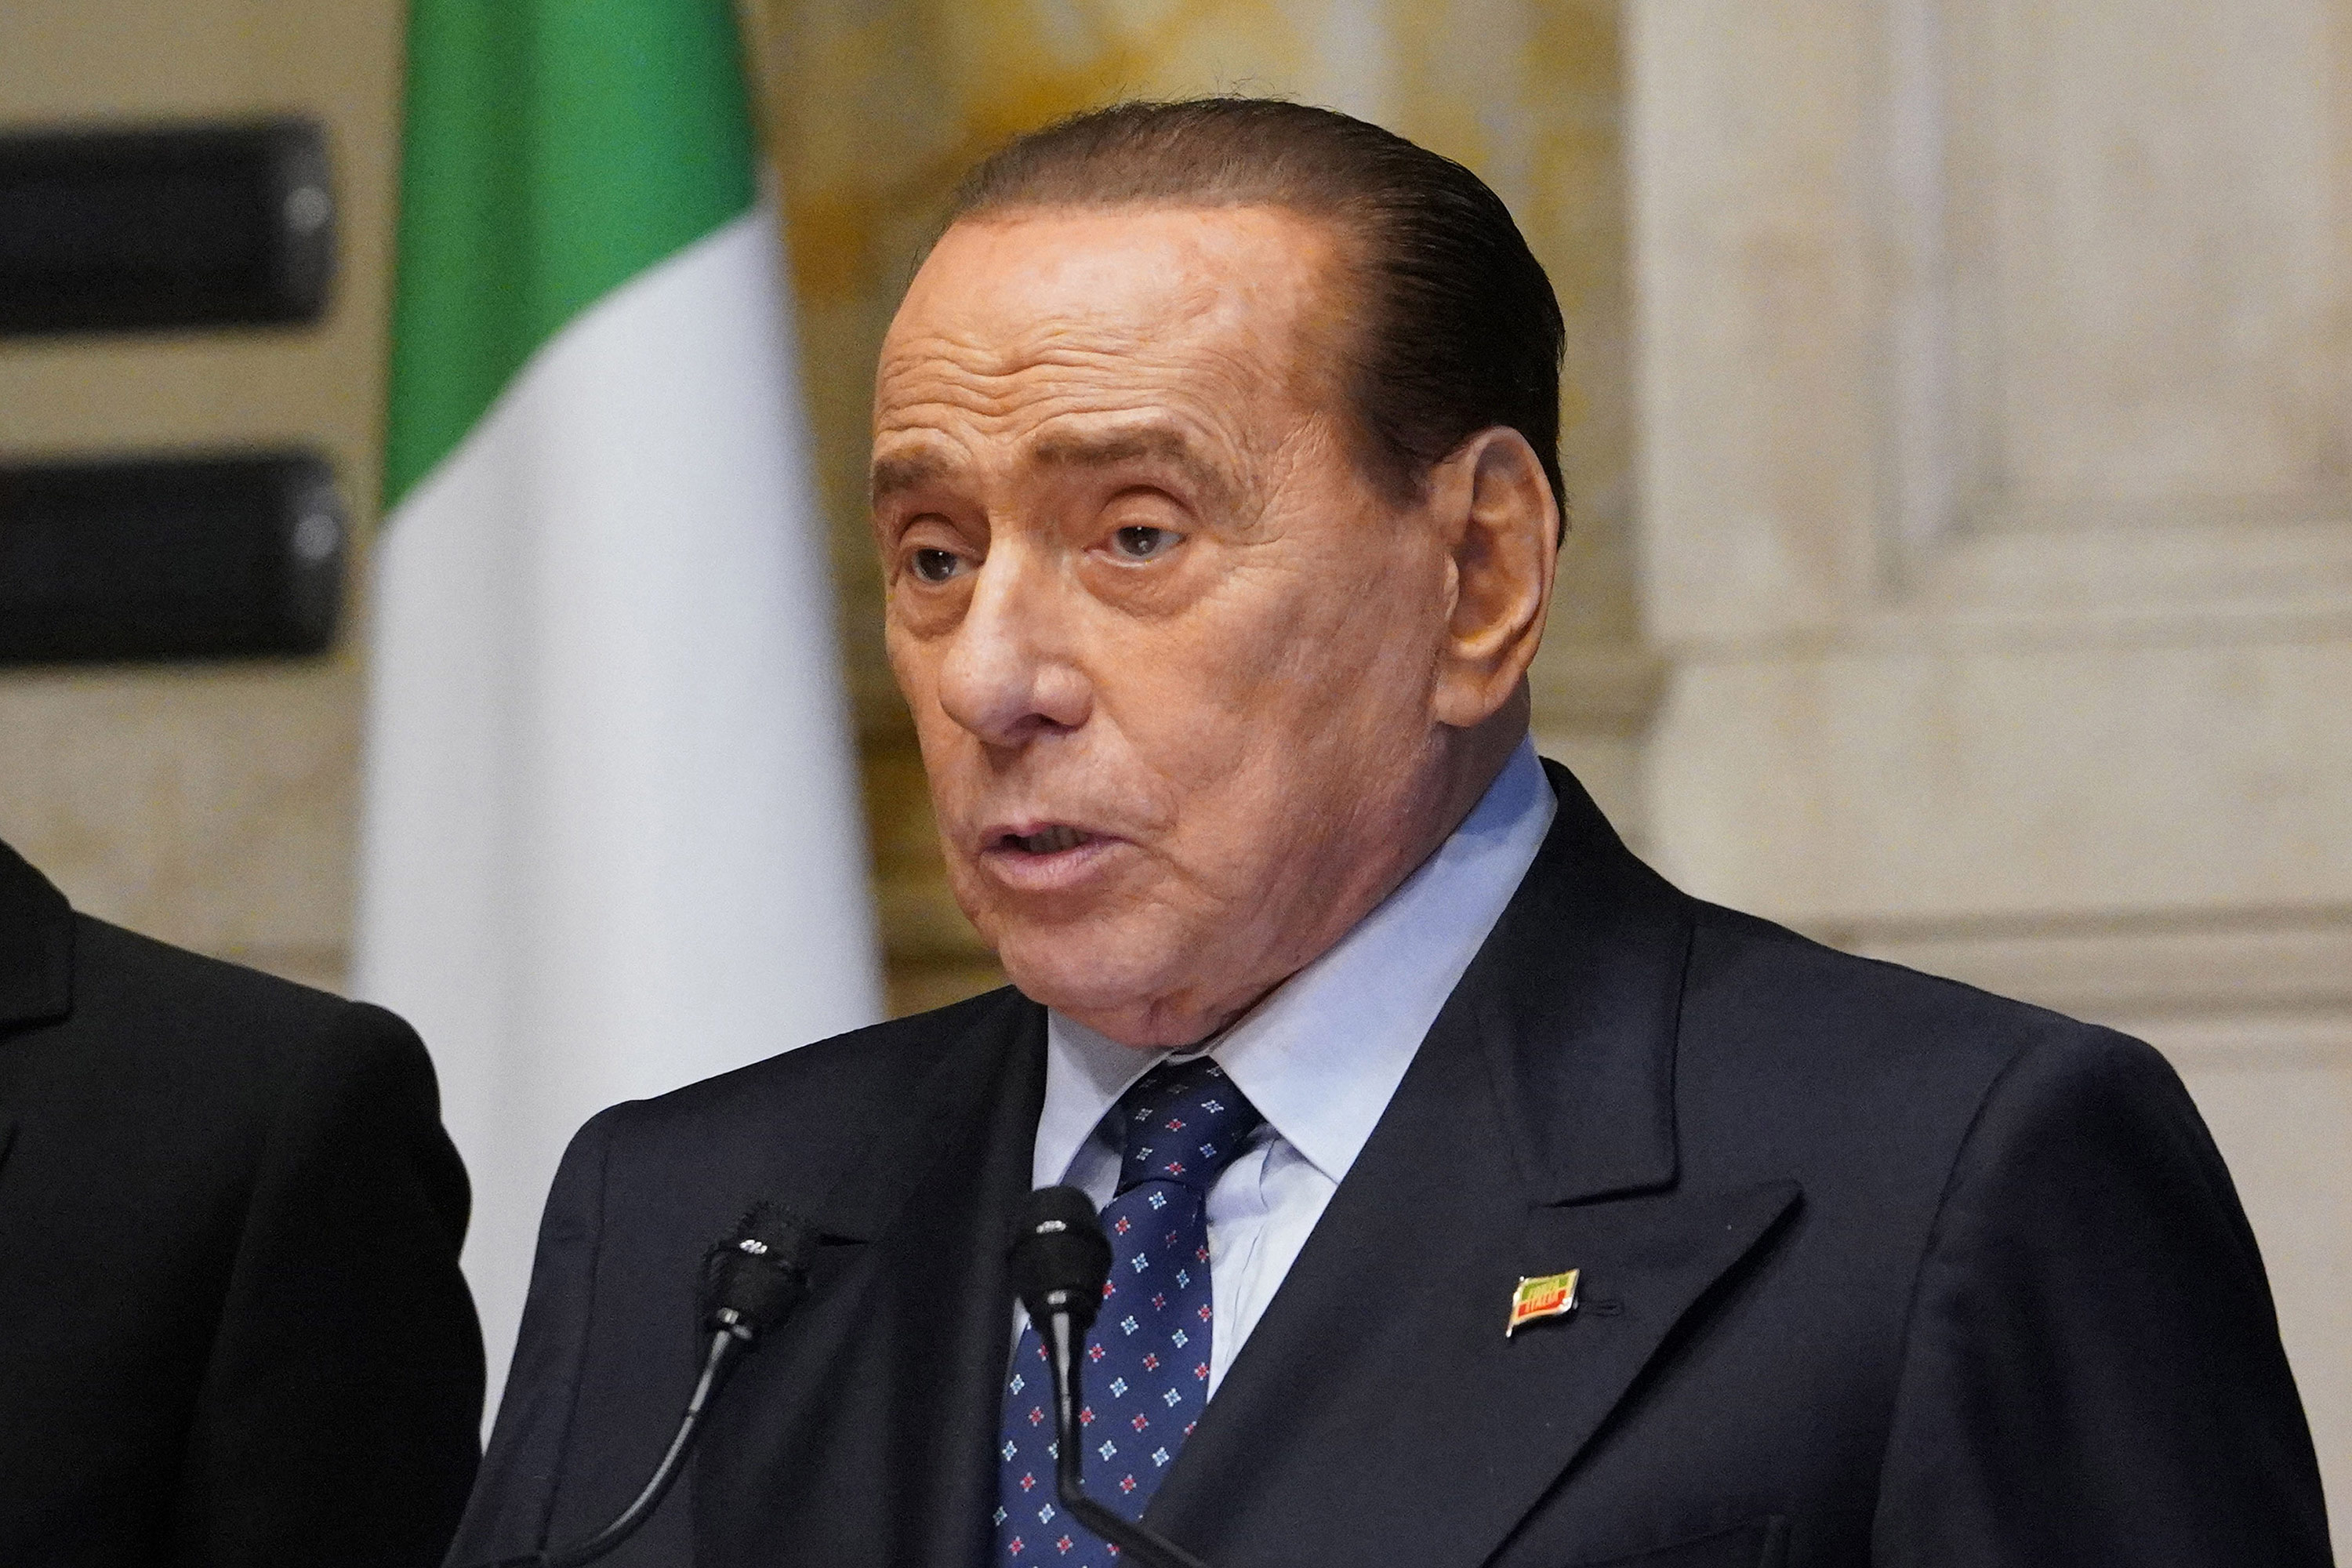 Italy's former prime minister, Silvio Berlusconi, speaks at the Chamber of Deputies on February 9, in Rome, Italy.